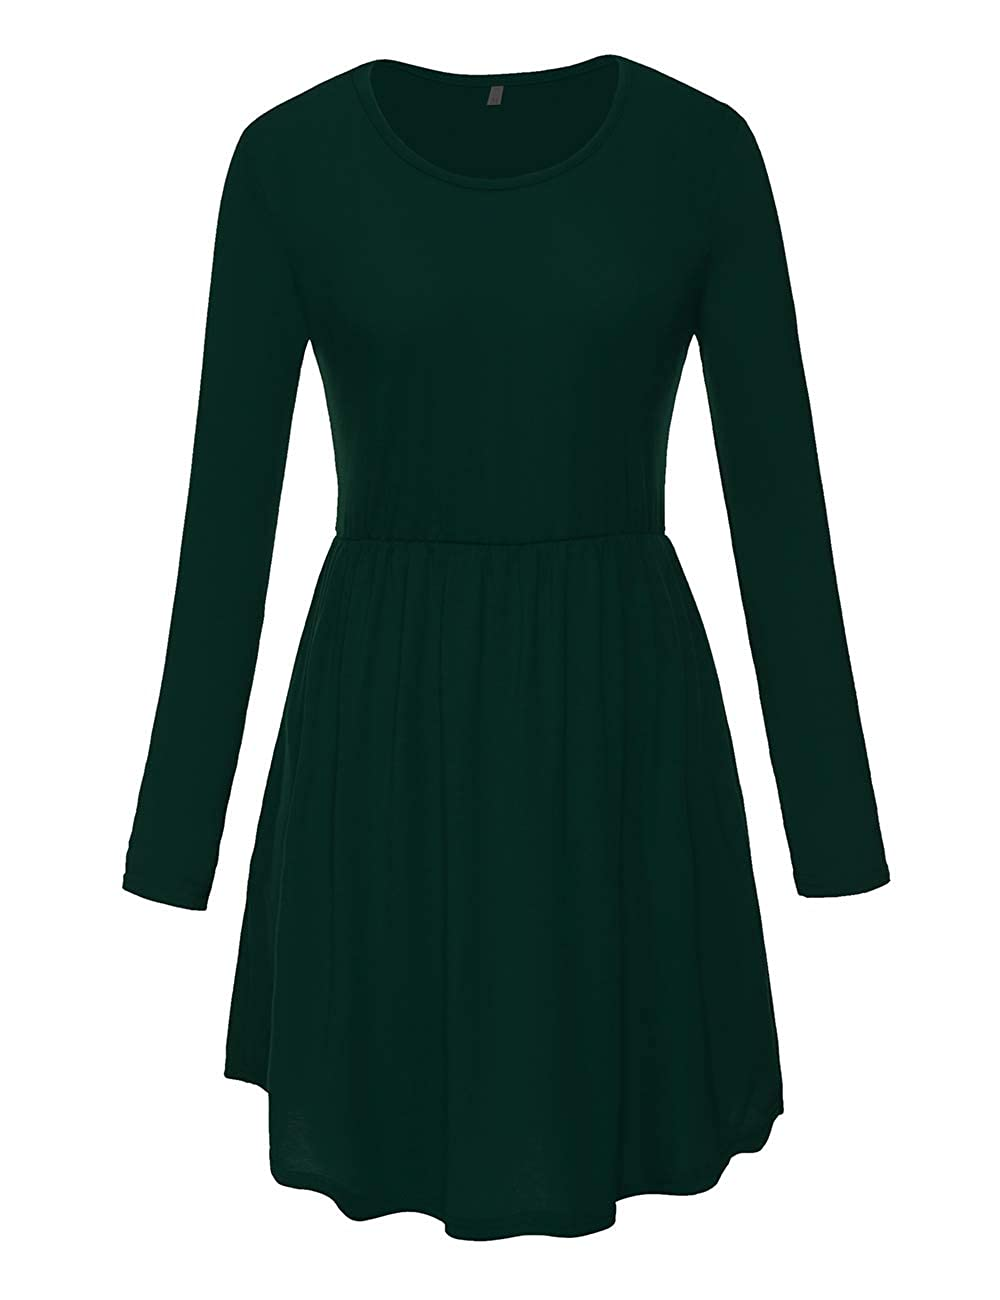 1green Long Sleeve CROSS1946 Women's Racerback Pleated Sundress Elastic Waist Flowy Curved Hem TShirt Dress Pockets